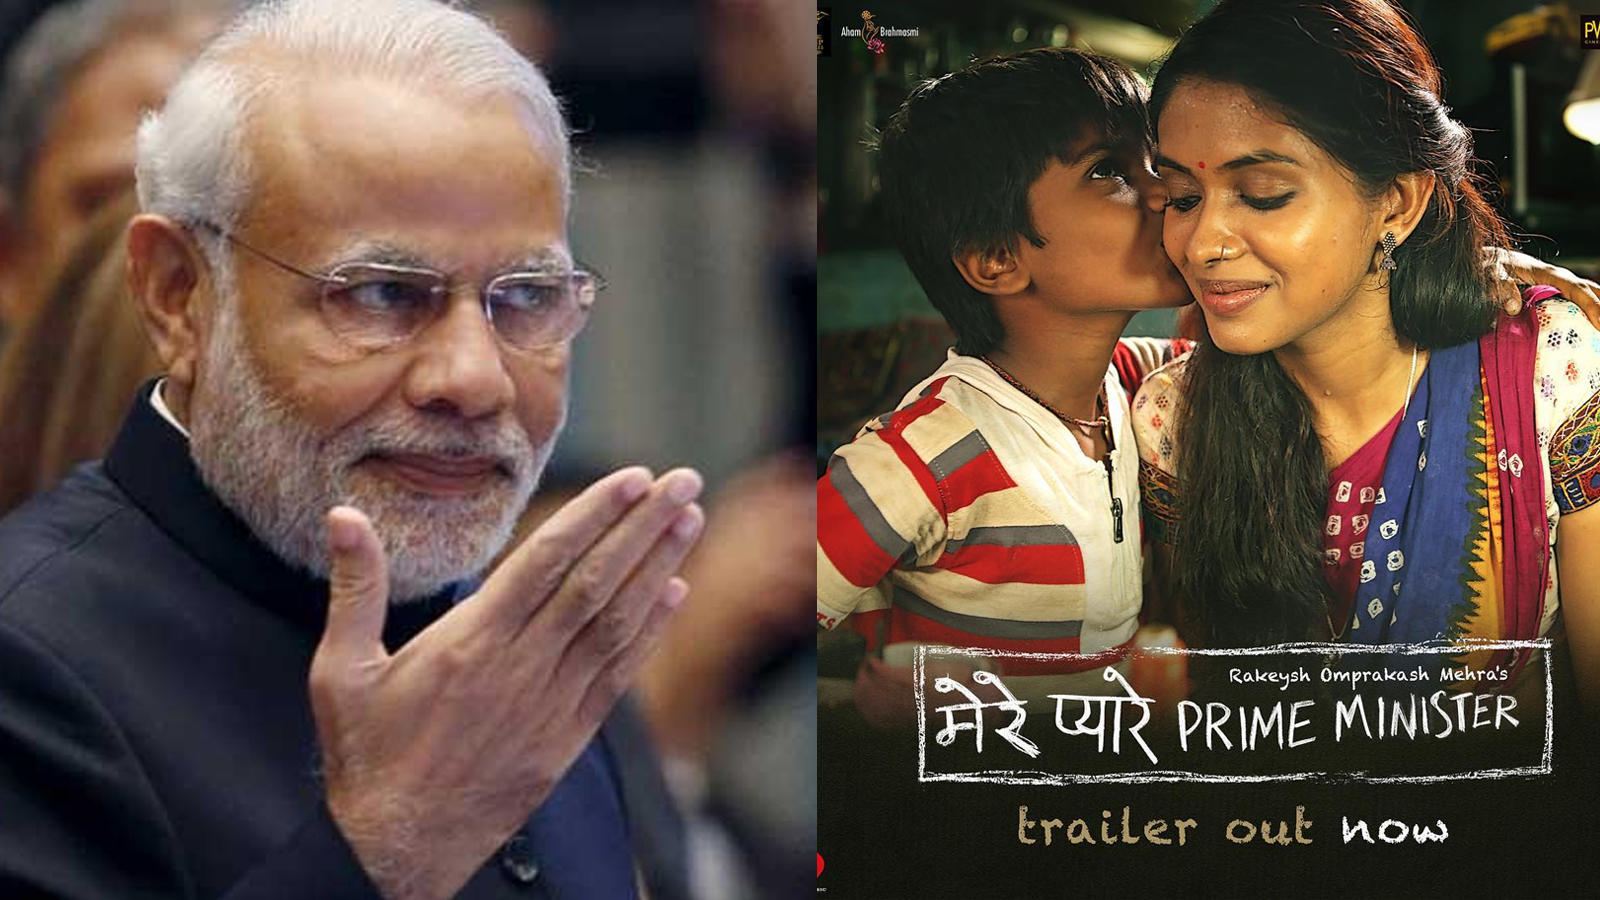 Rakeysh Omprakash Mehra says no to 'Mere Pyaare Prime Minister' special screening for PM Narendra Modi